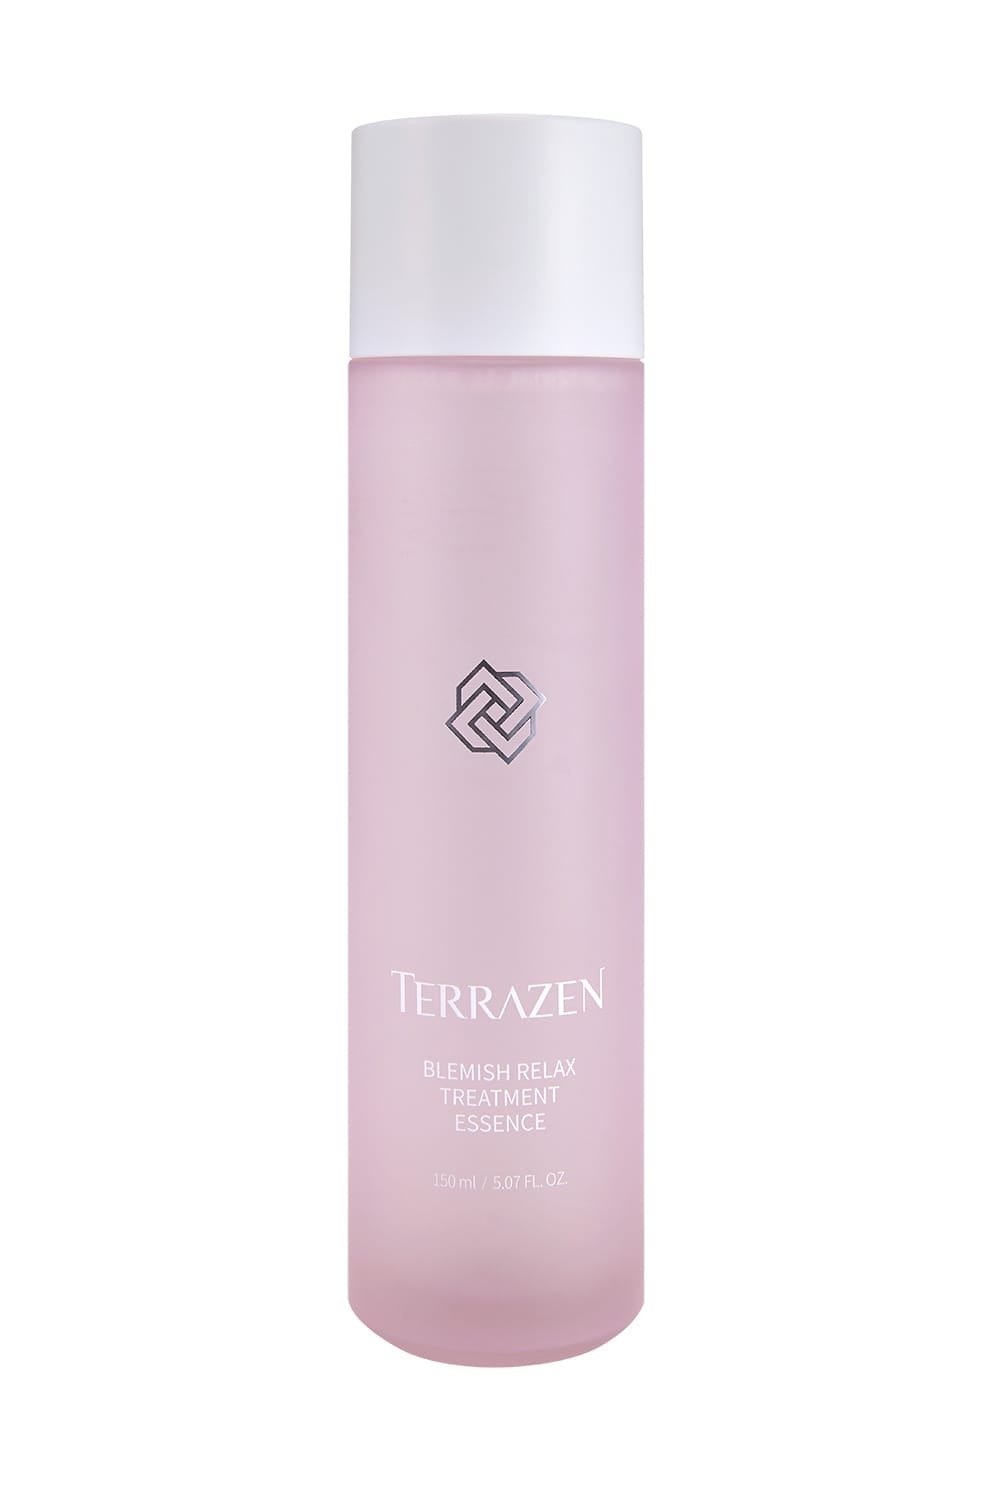 Terrazen Blemish Relax Treatment Essence